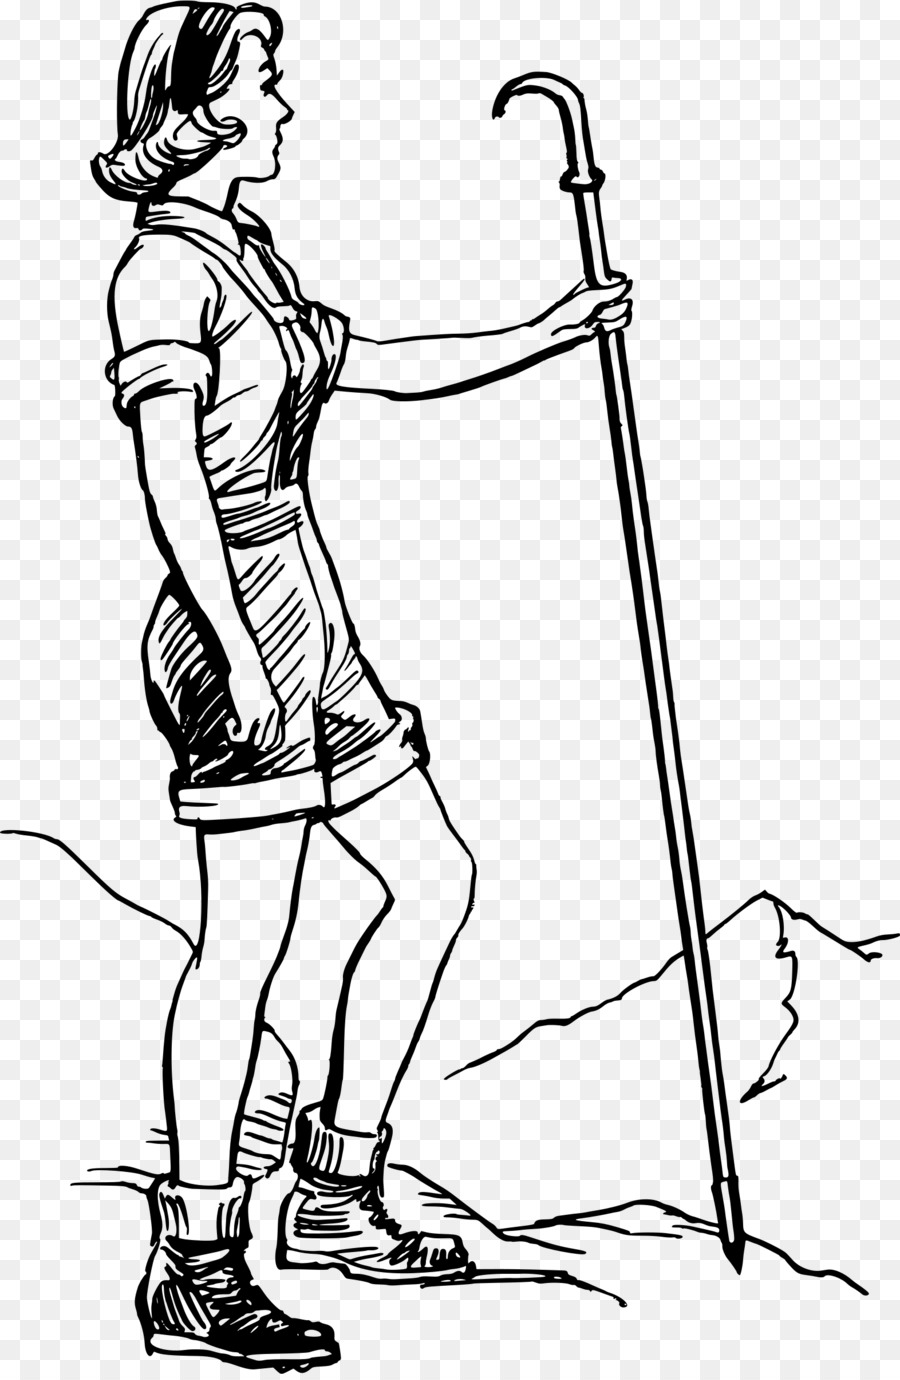 Woman hiking clipart clipart royalty free download Camping Cartoon png download - 1572*2400 - Free Transparent ... clipart royalty free download